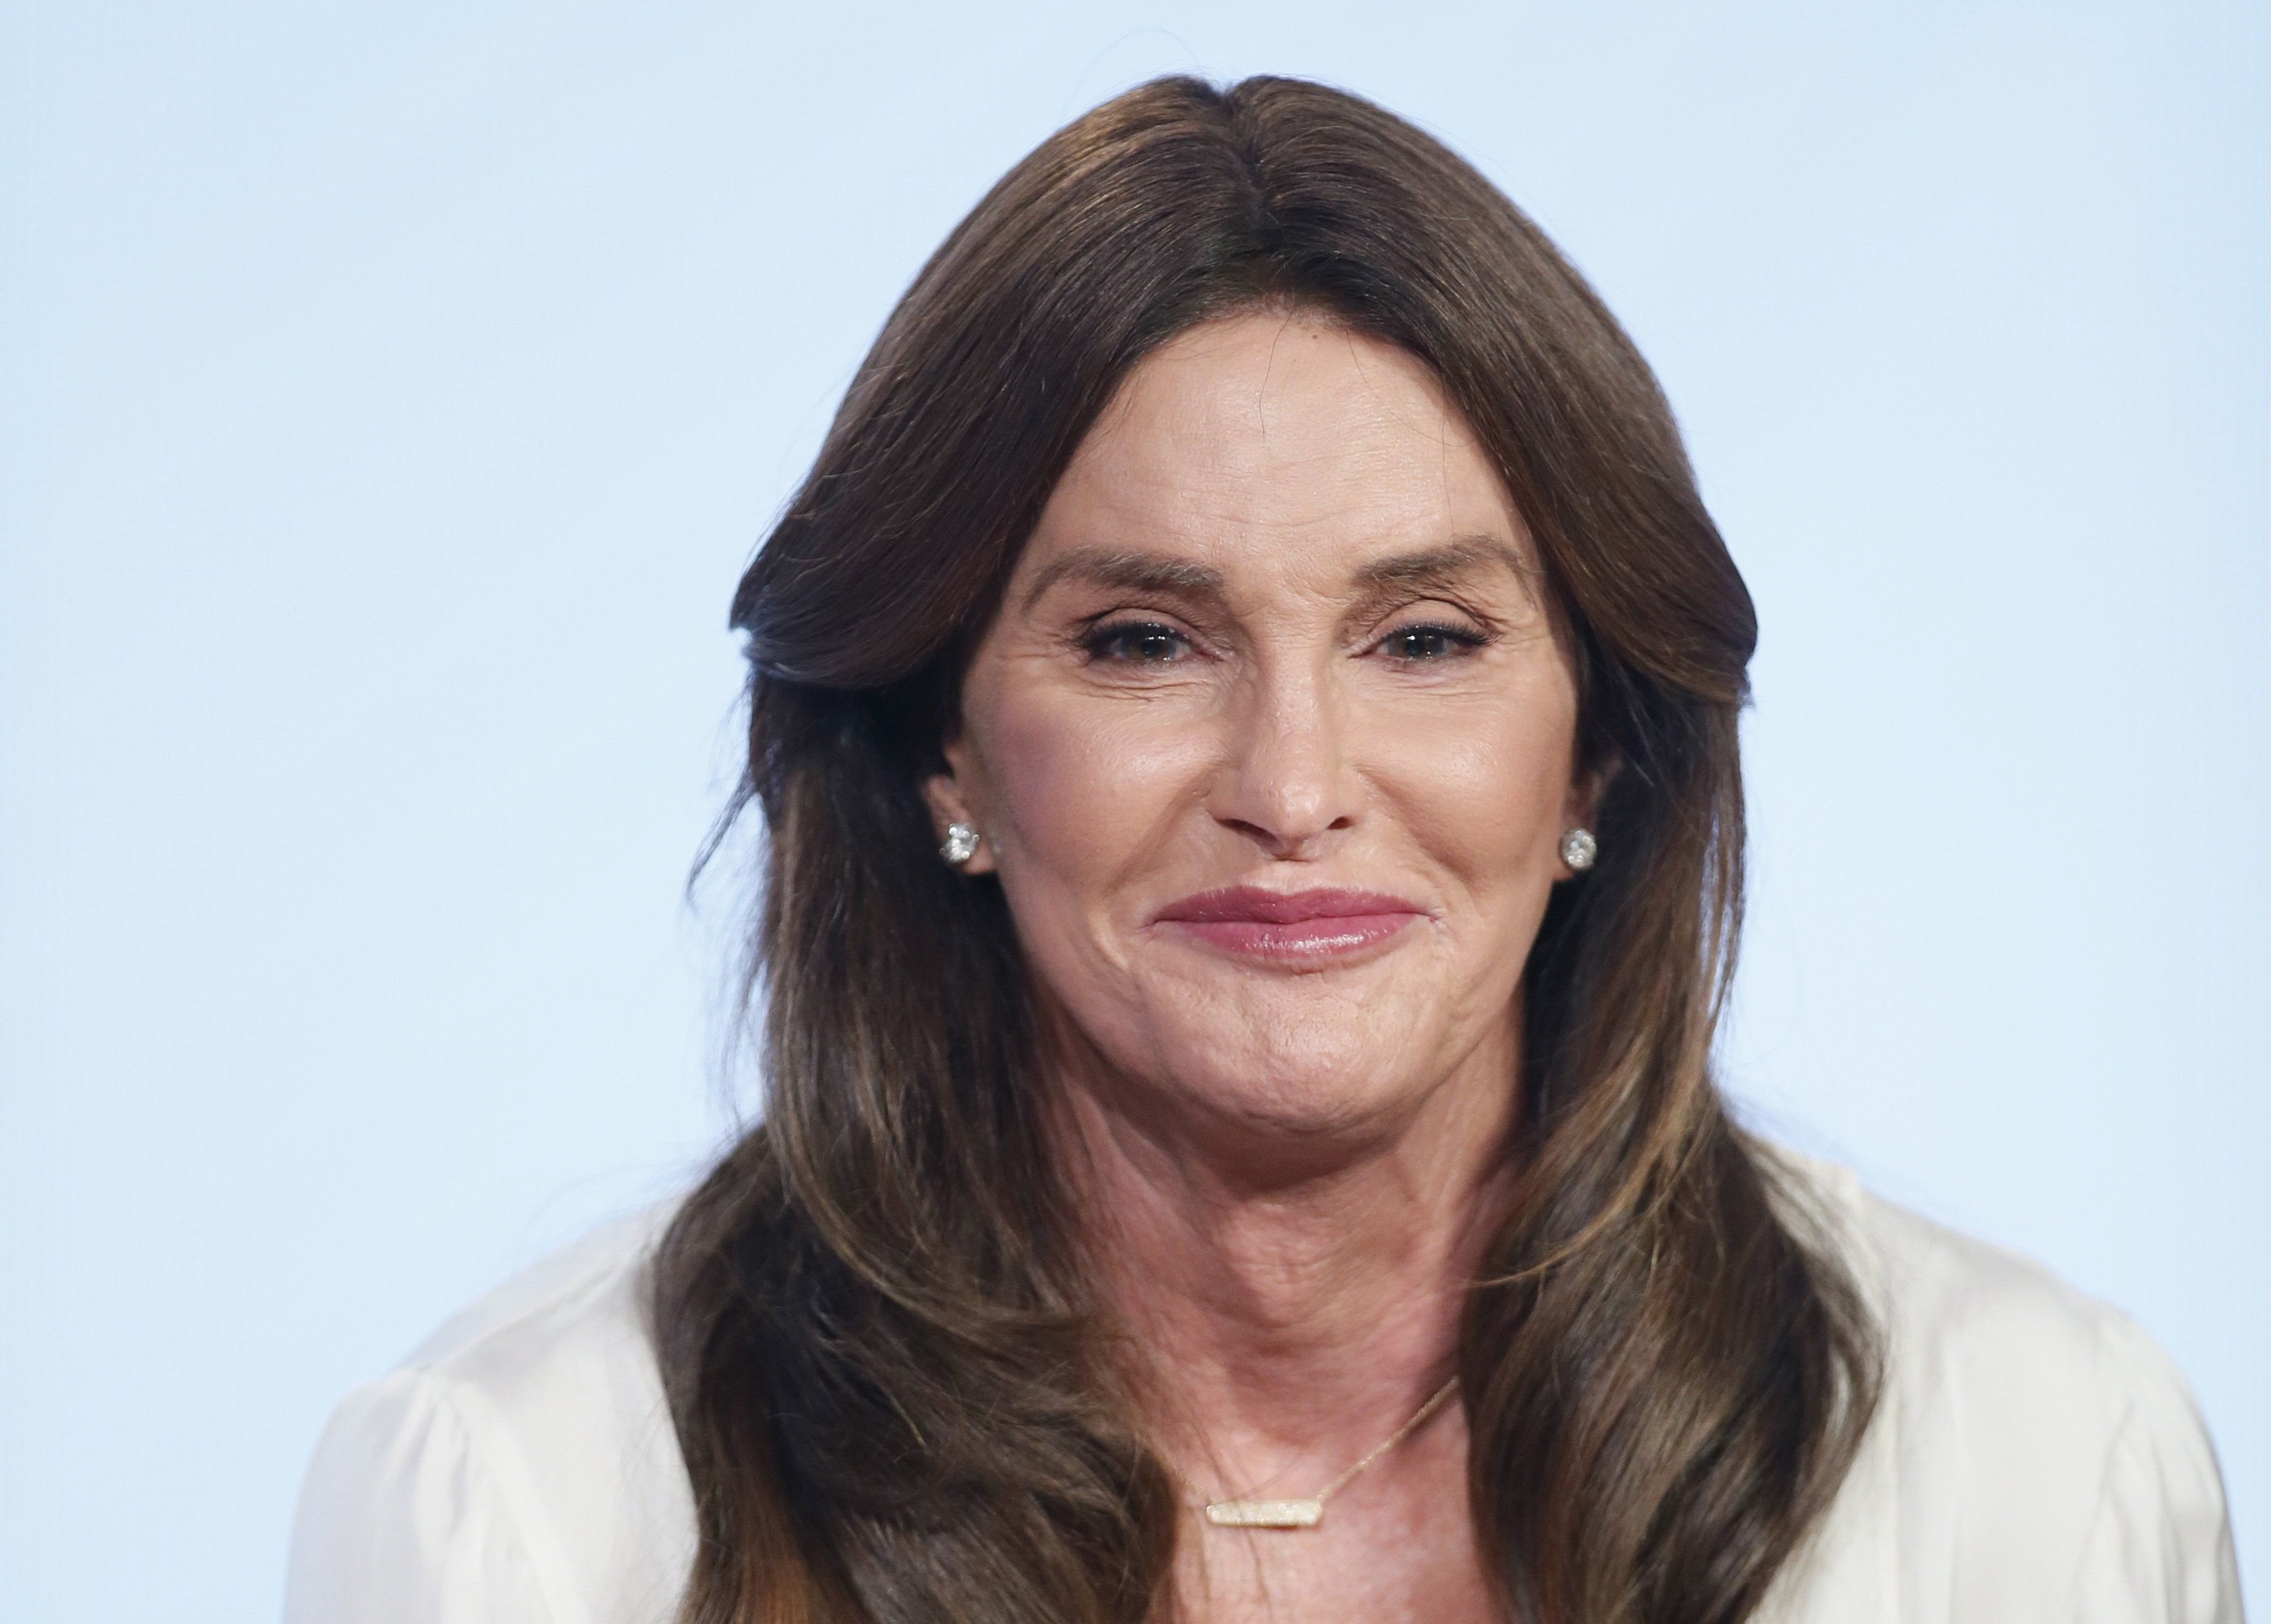 """Cast members Caitlyn Jenner participates in a panel for the E! Entertainment Television series """"I Am Cait"""" during the Television Critics Association (TCA) Cable Winter Press Tour in Pasadena, California, January 14, 2016. REUTERS/Danny Moloshok"""